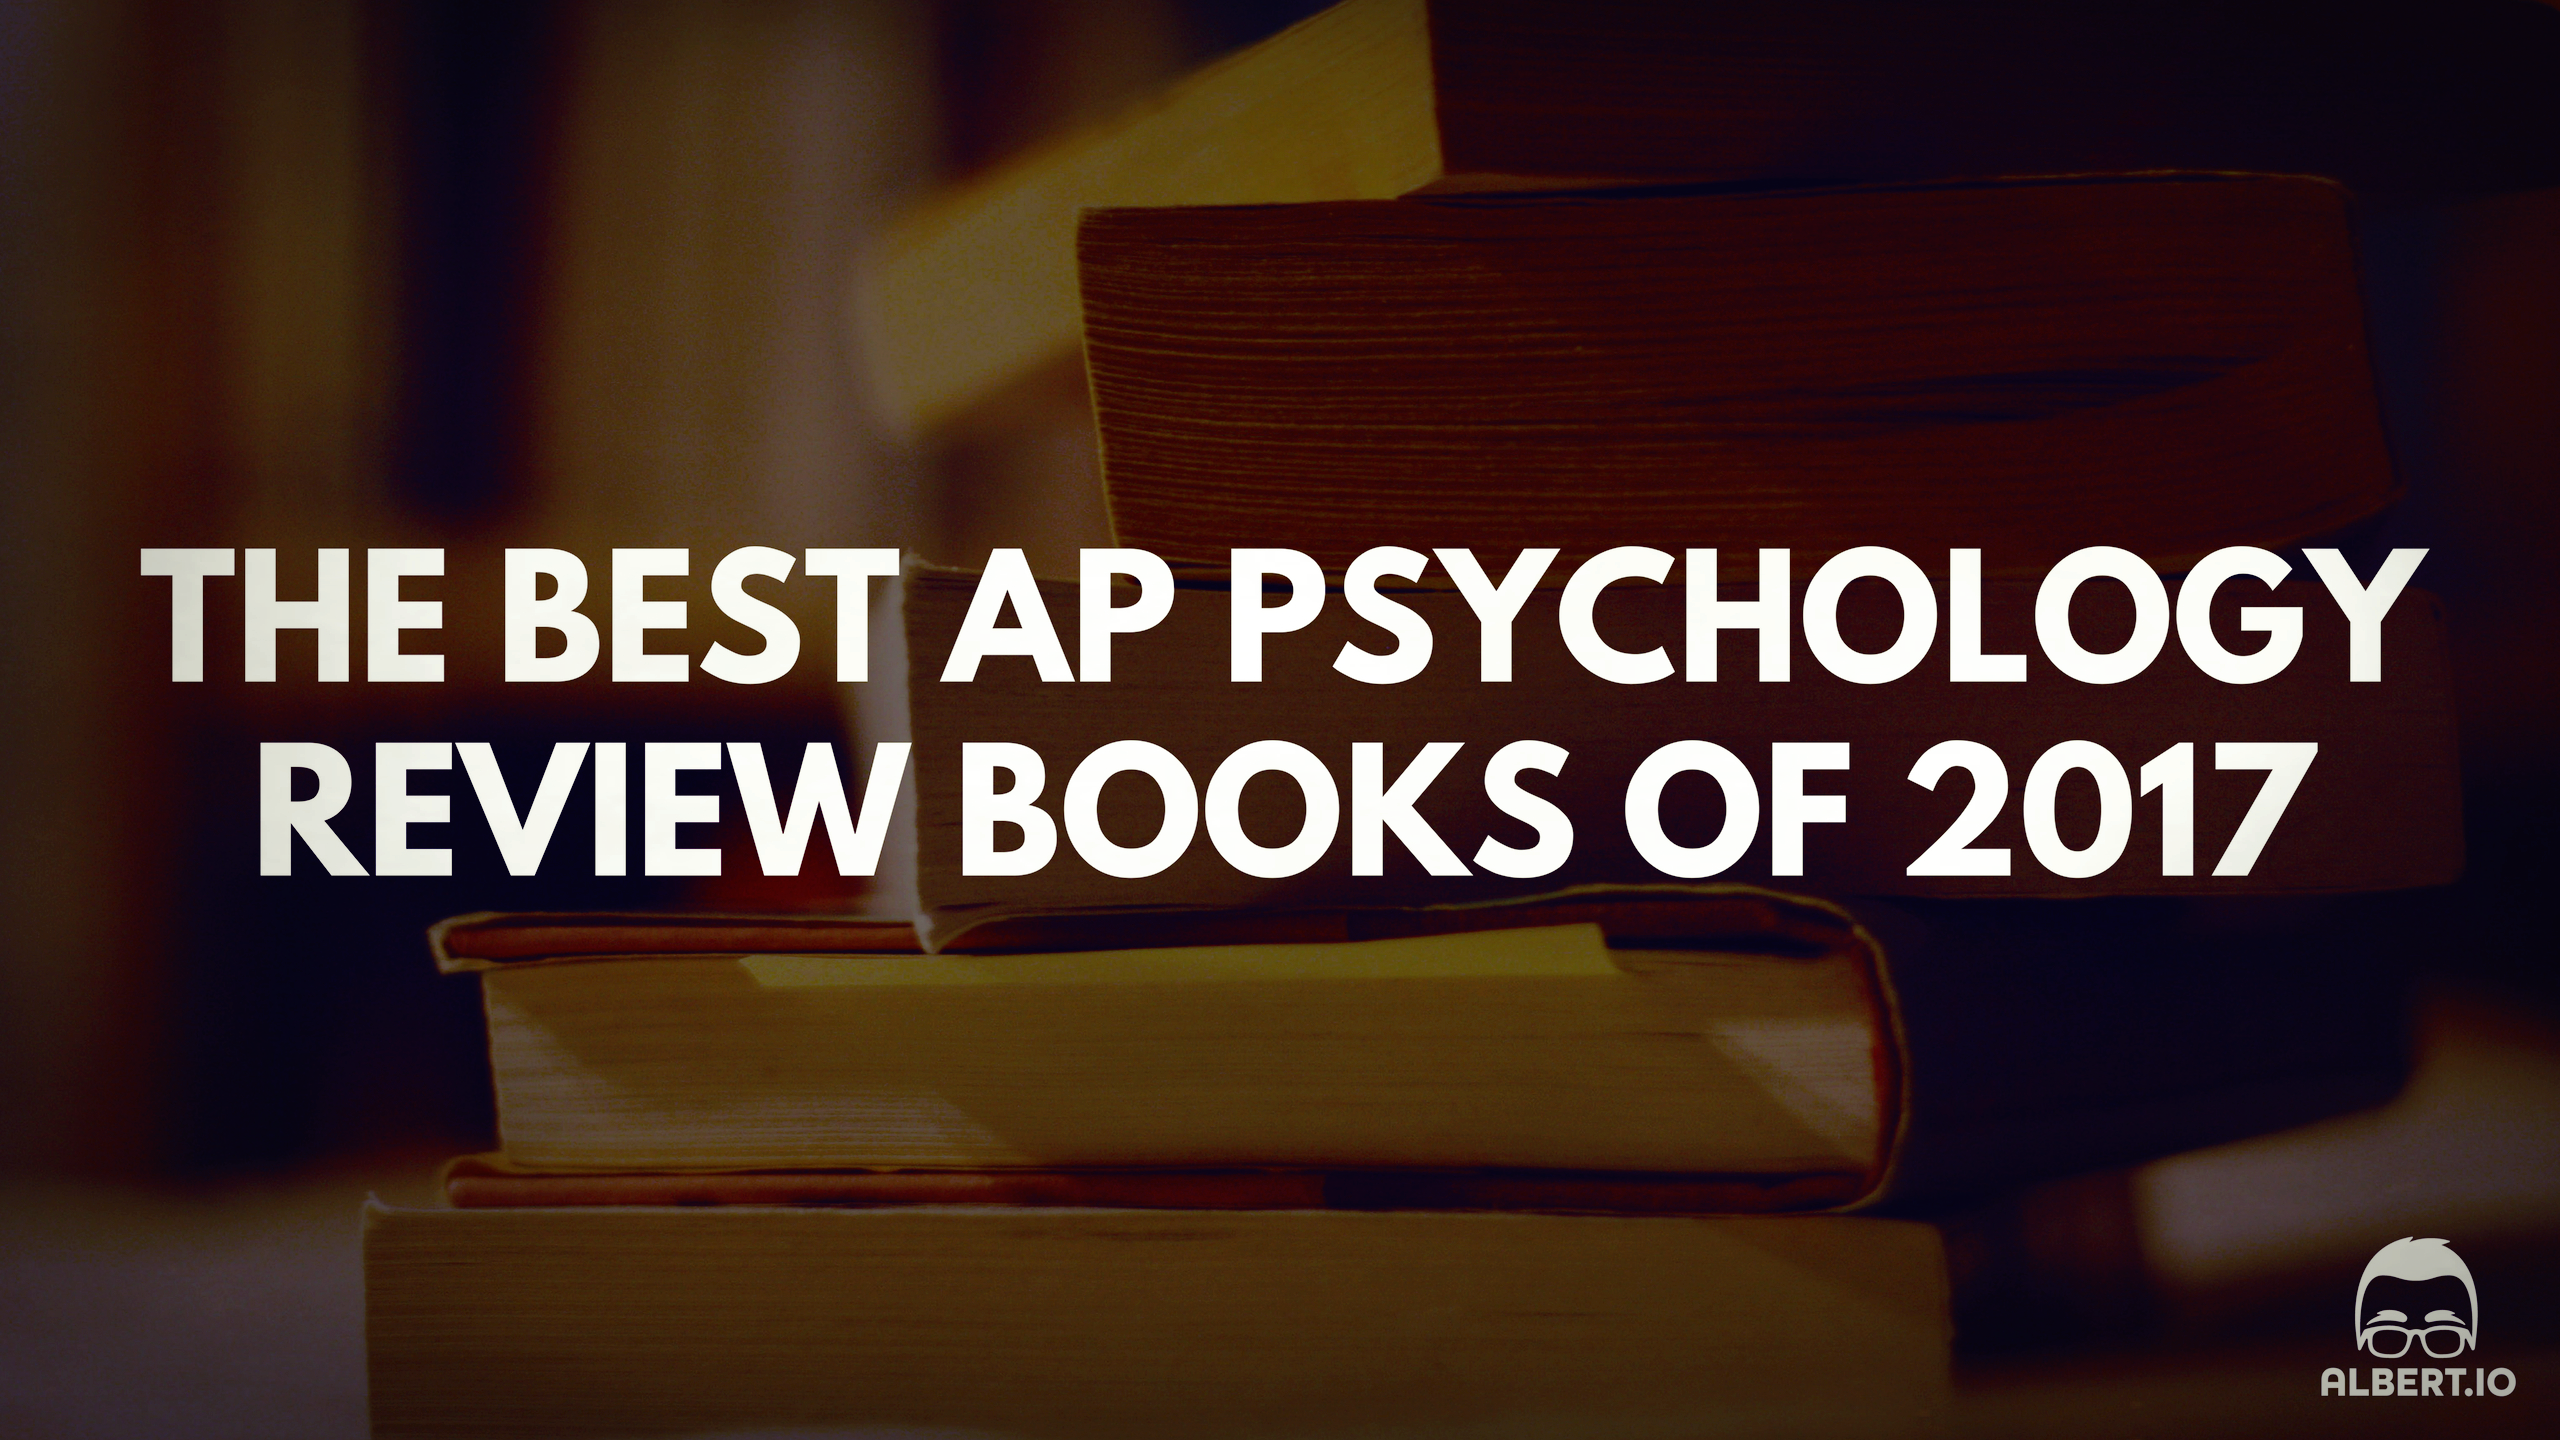 Best AP Psychology Review Books of 2017